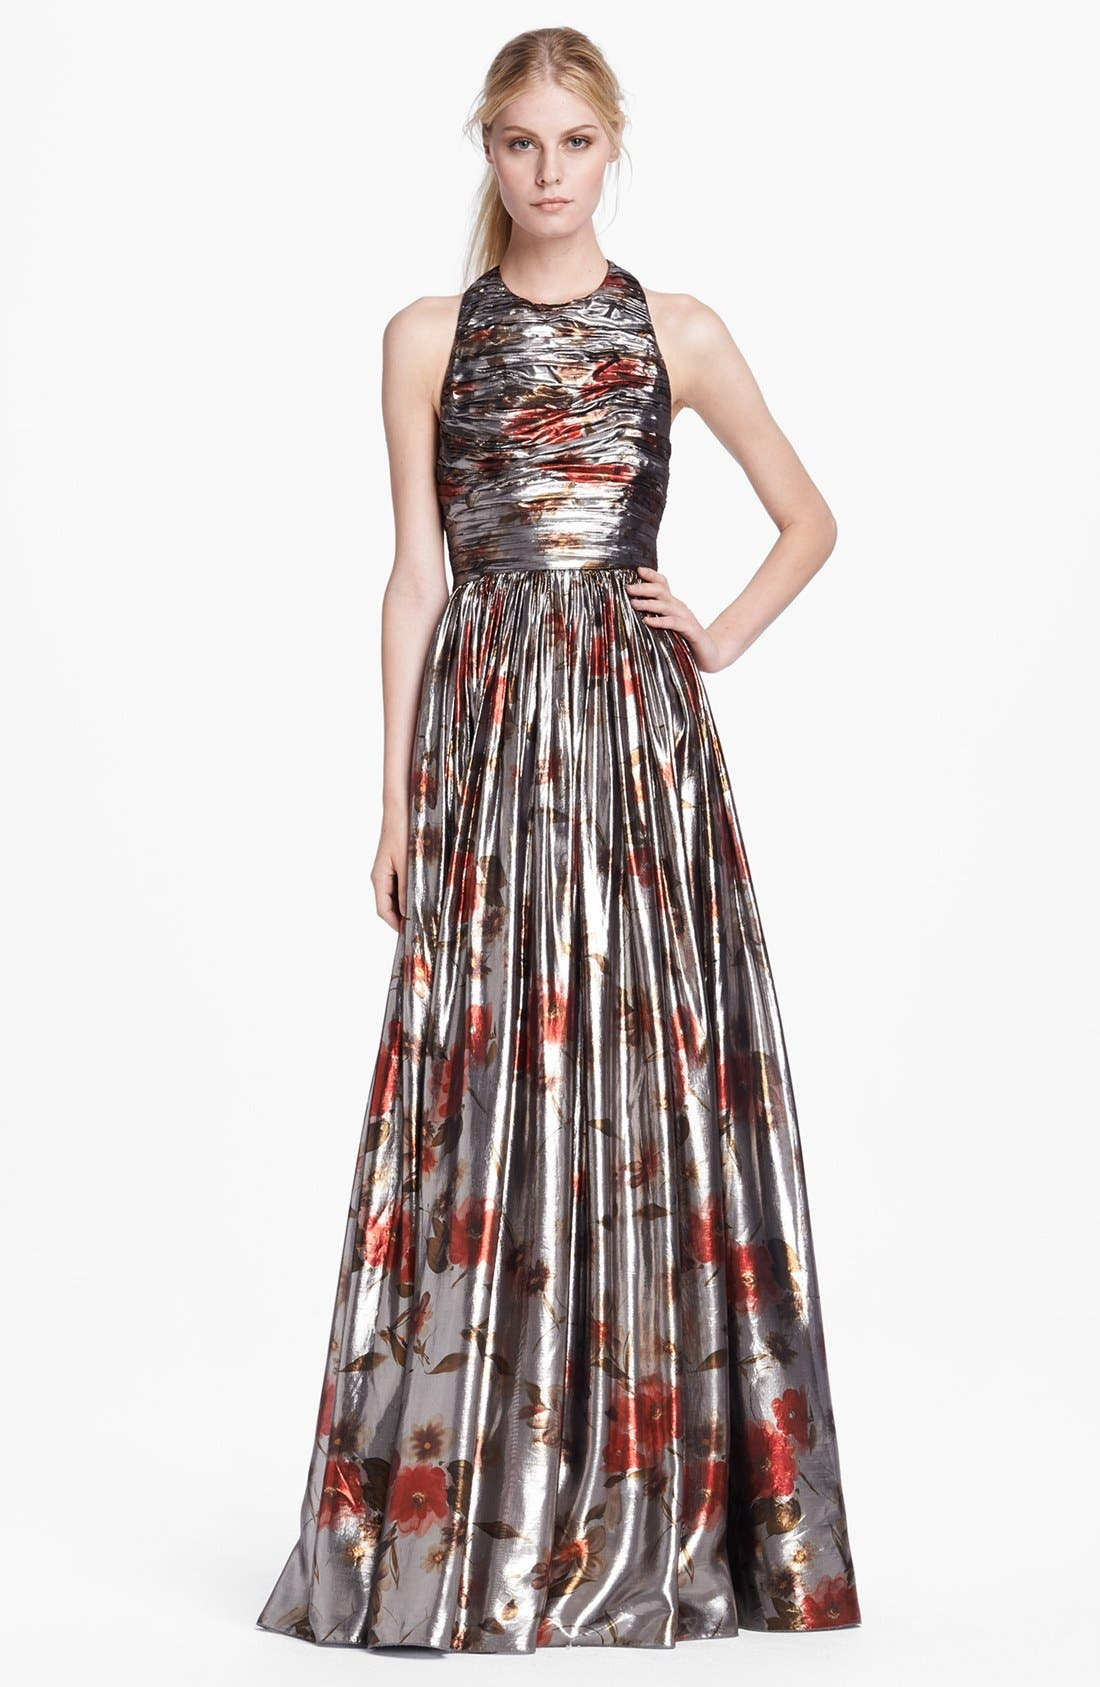 Alternate Image 1 Selected - Alice + Olivia 'Nova' Sleeveless Lamé Gown